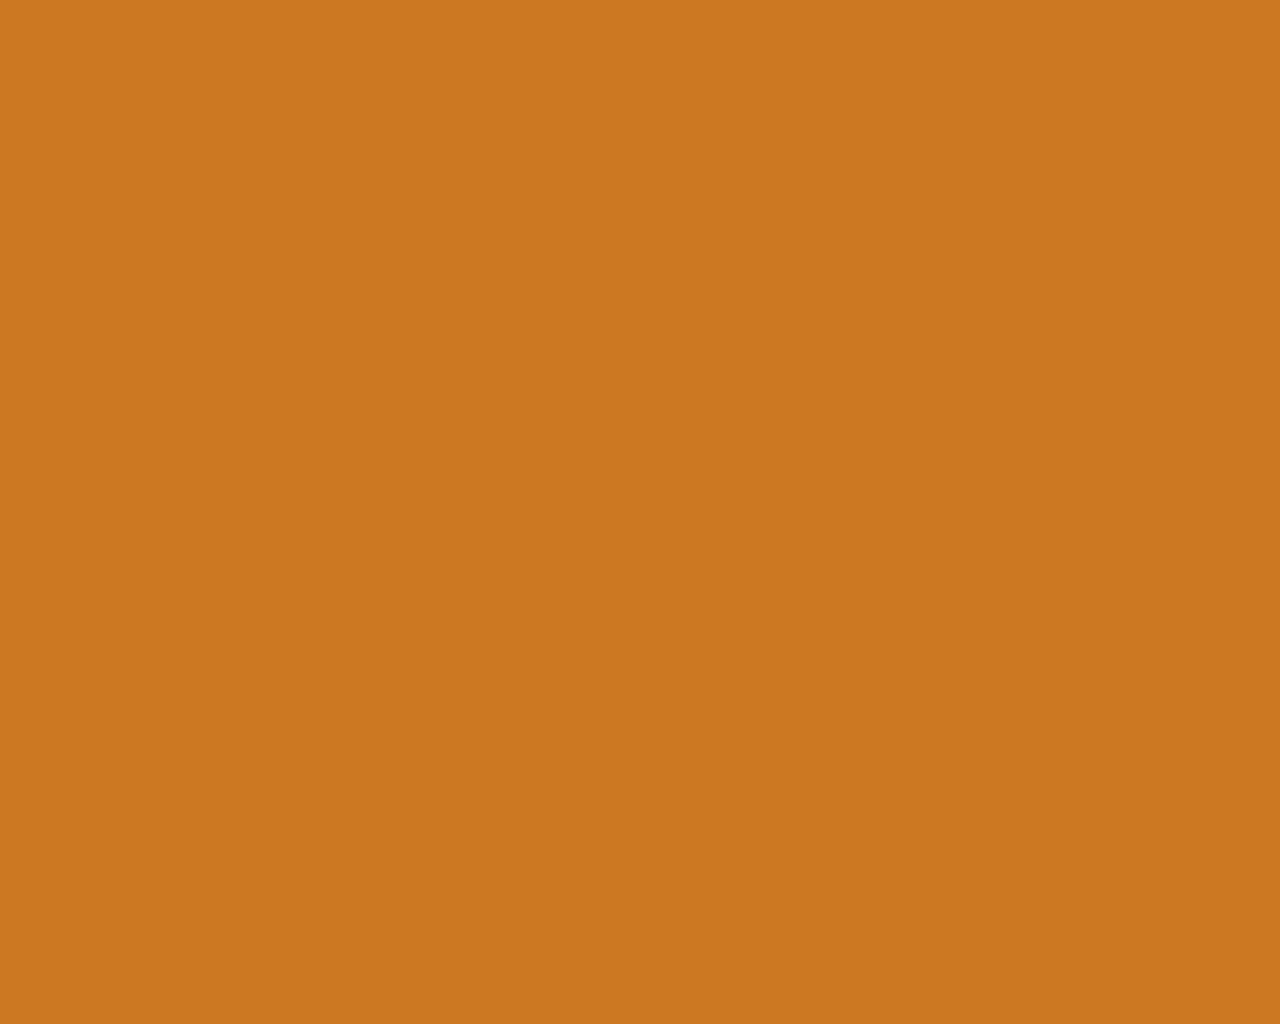 1280x1024 Ochre Solid Color Background